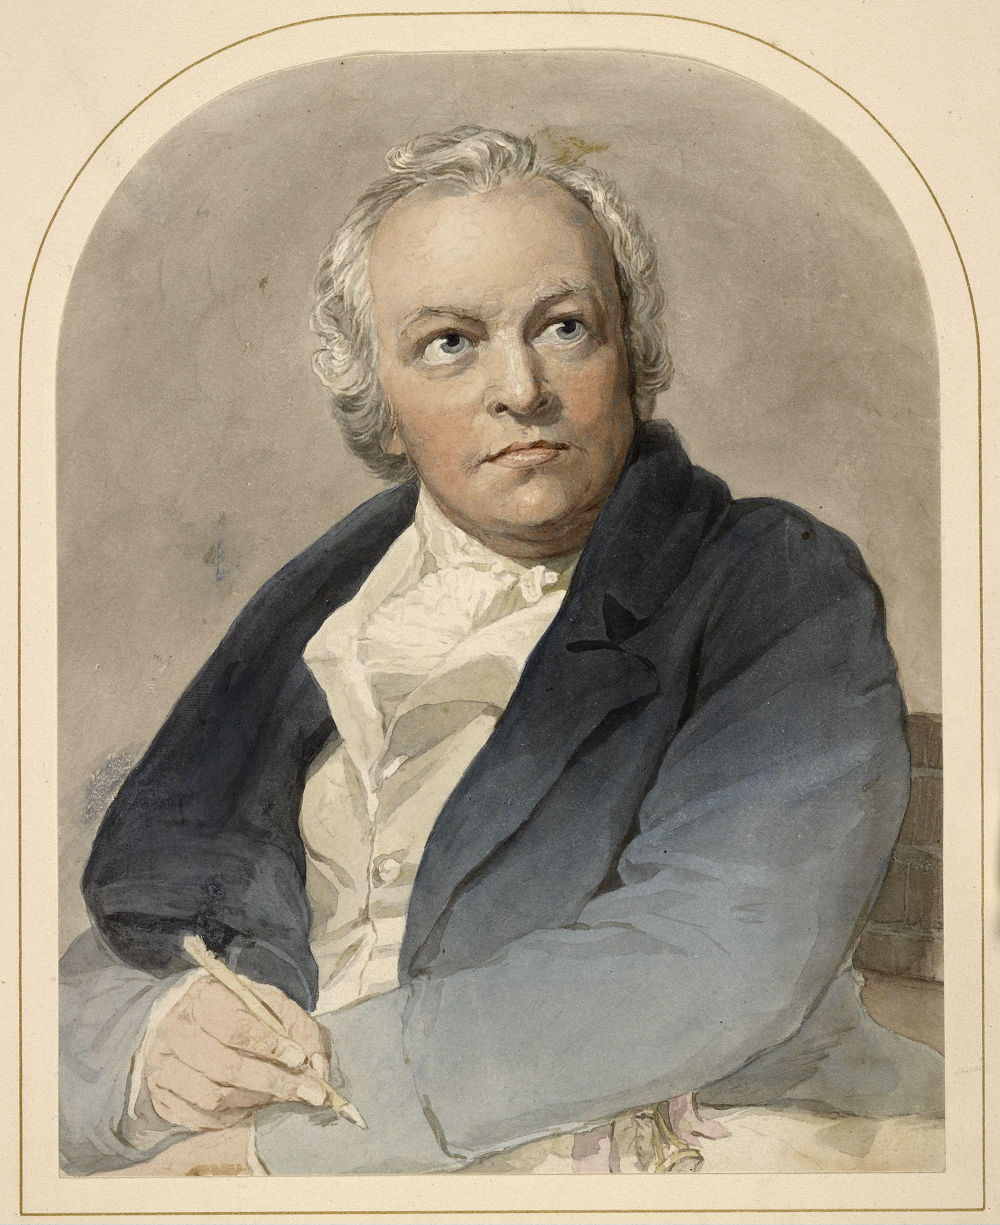 Compare 'The Lamb' and 'The Tyger' by William Blake Essay Sample